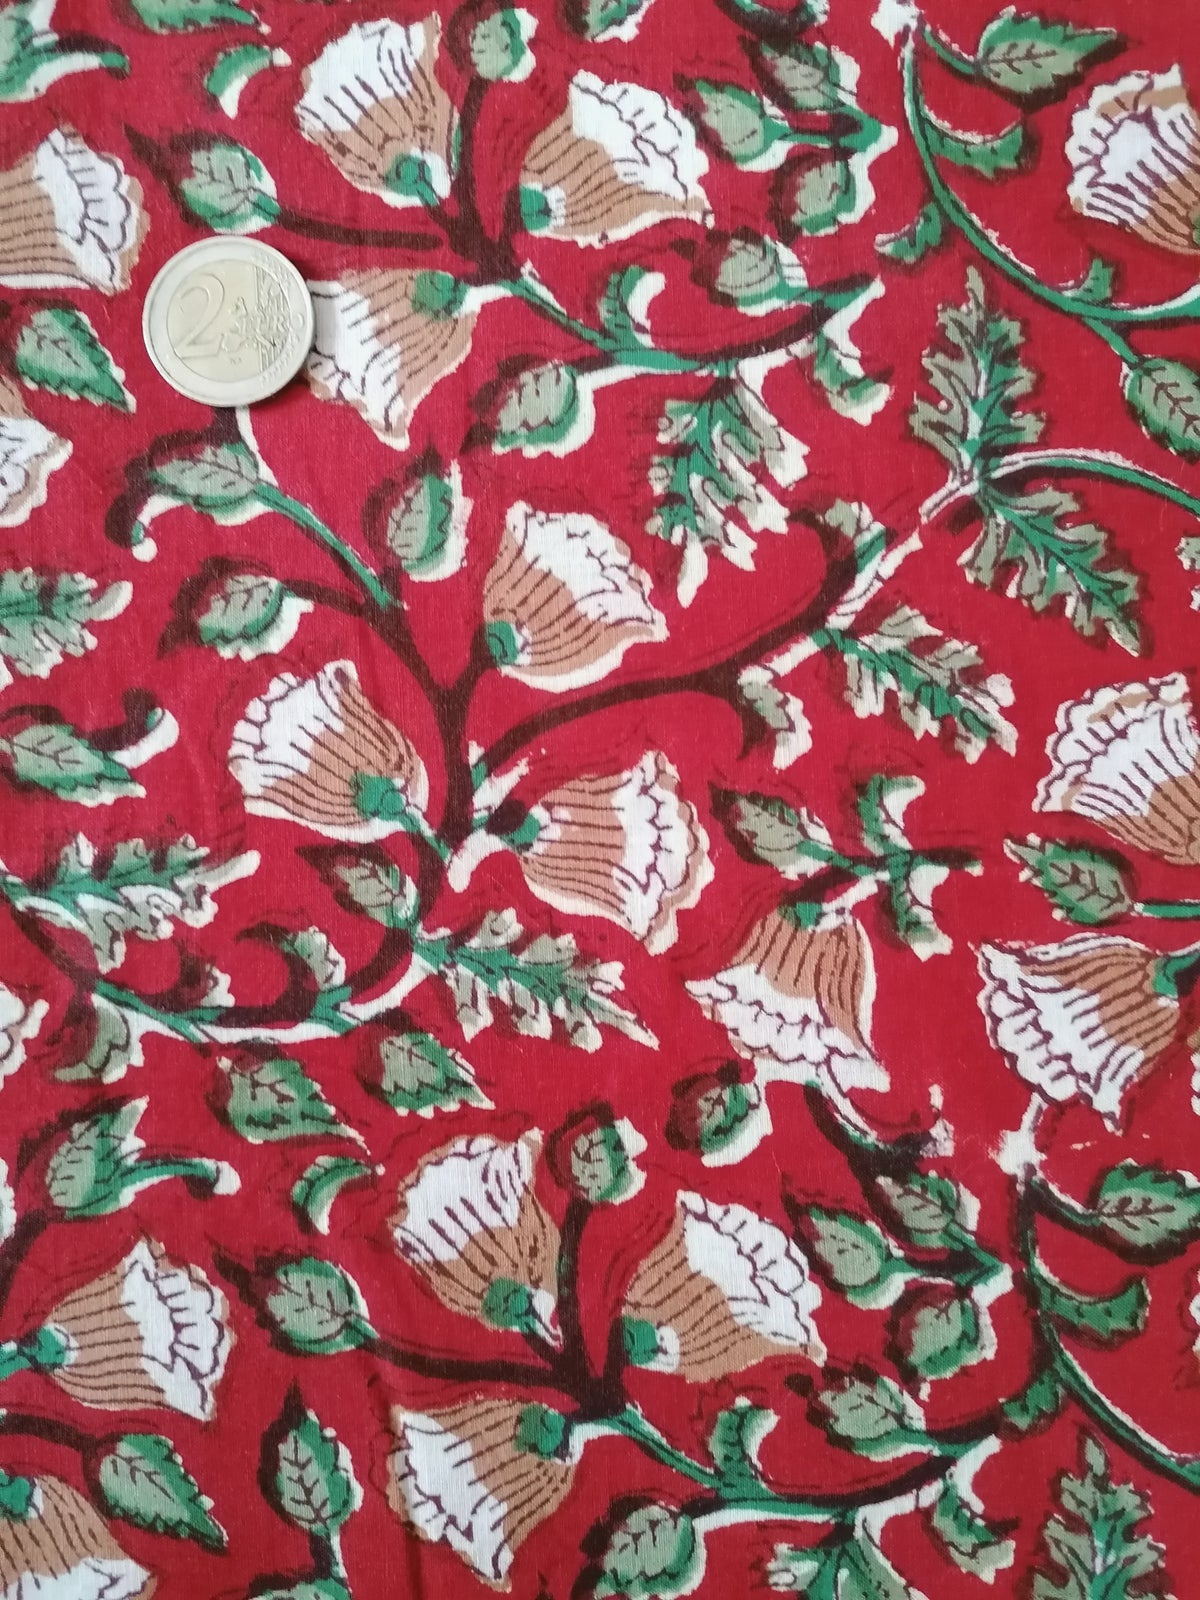 Image of Namasté fabric Noël